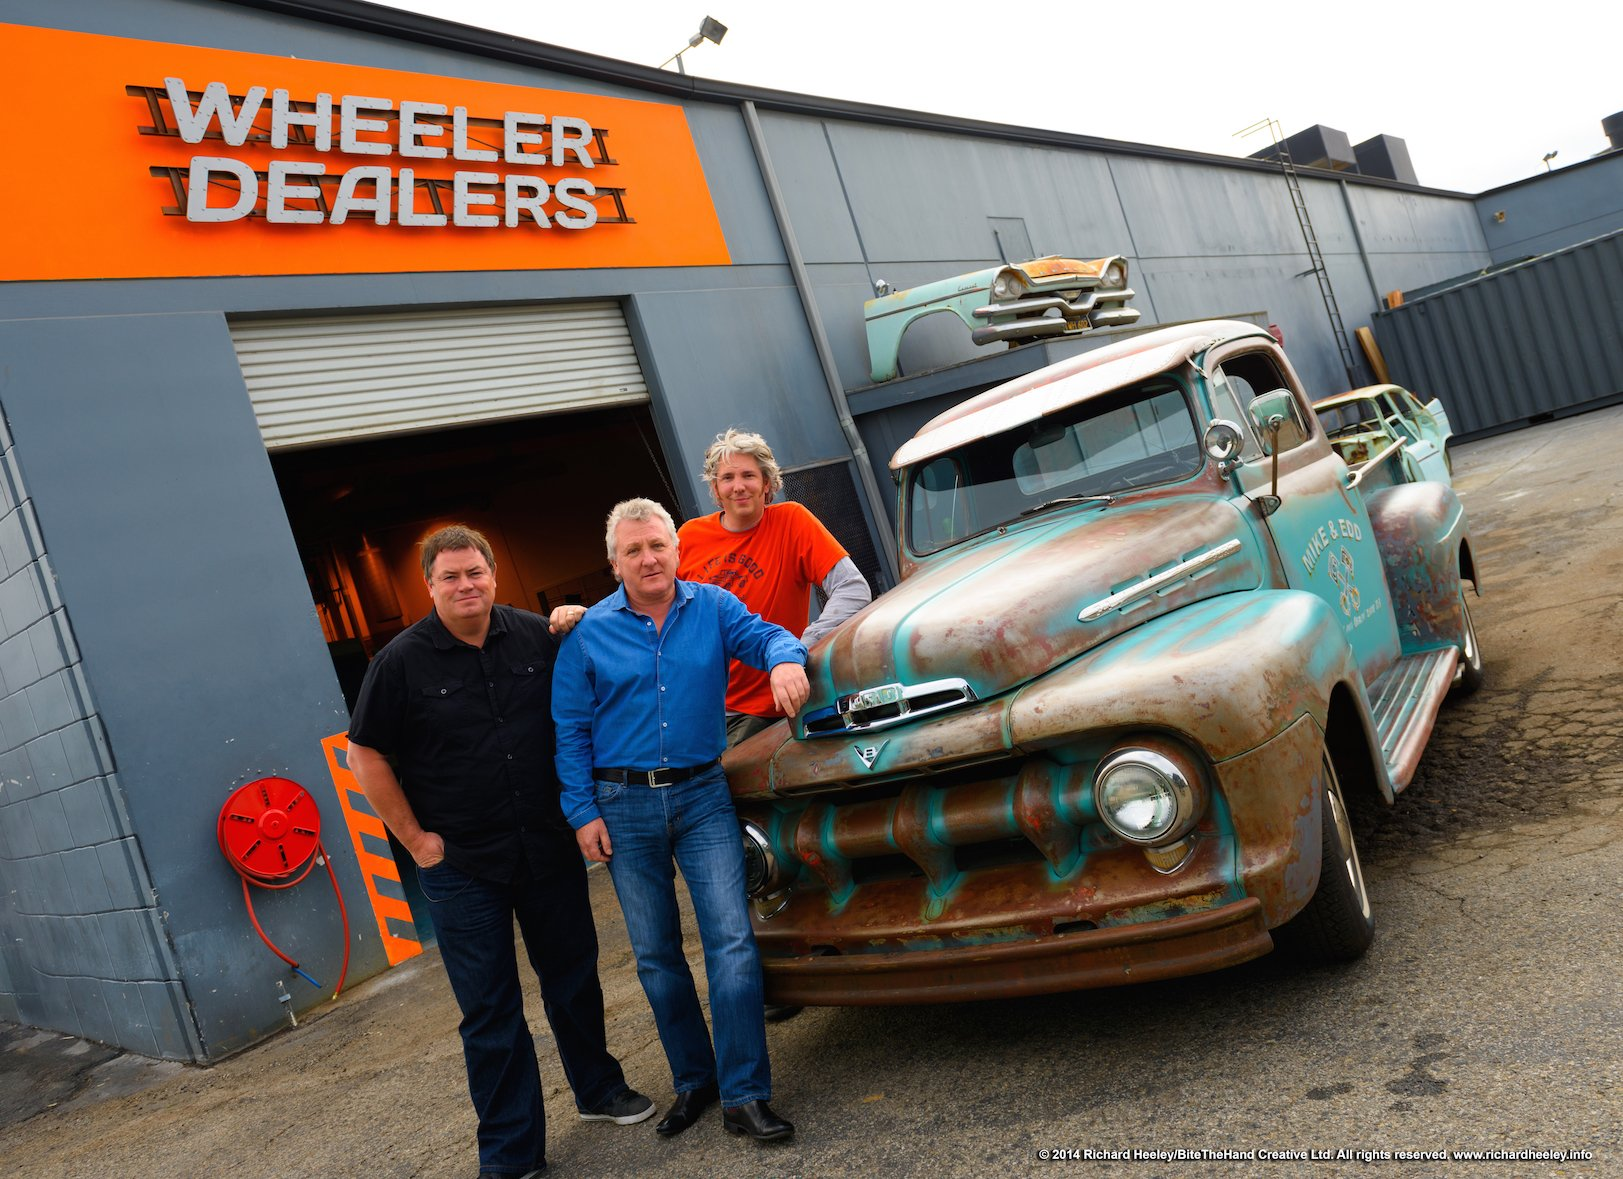 Cars From Wheeler Dealers For Sale